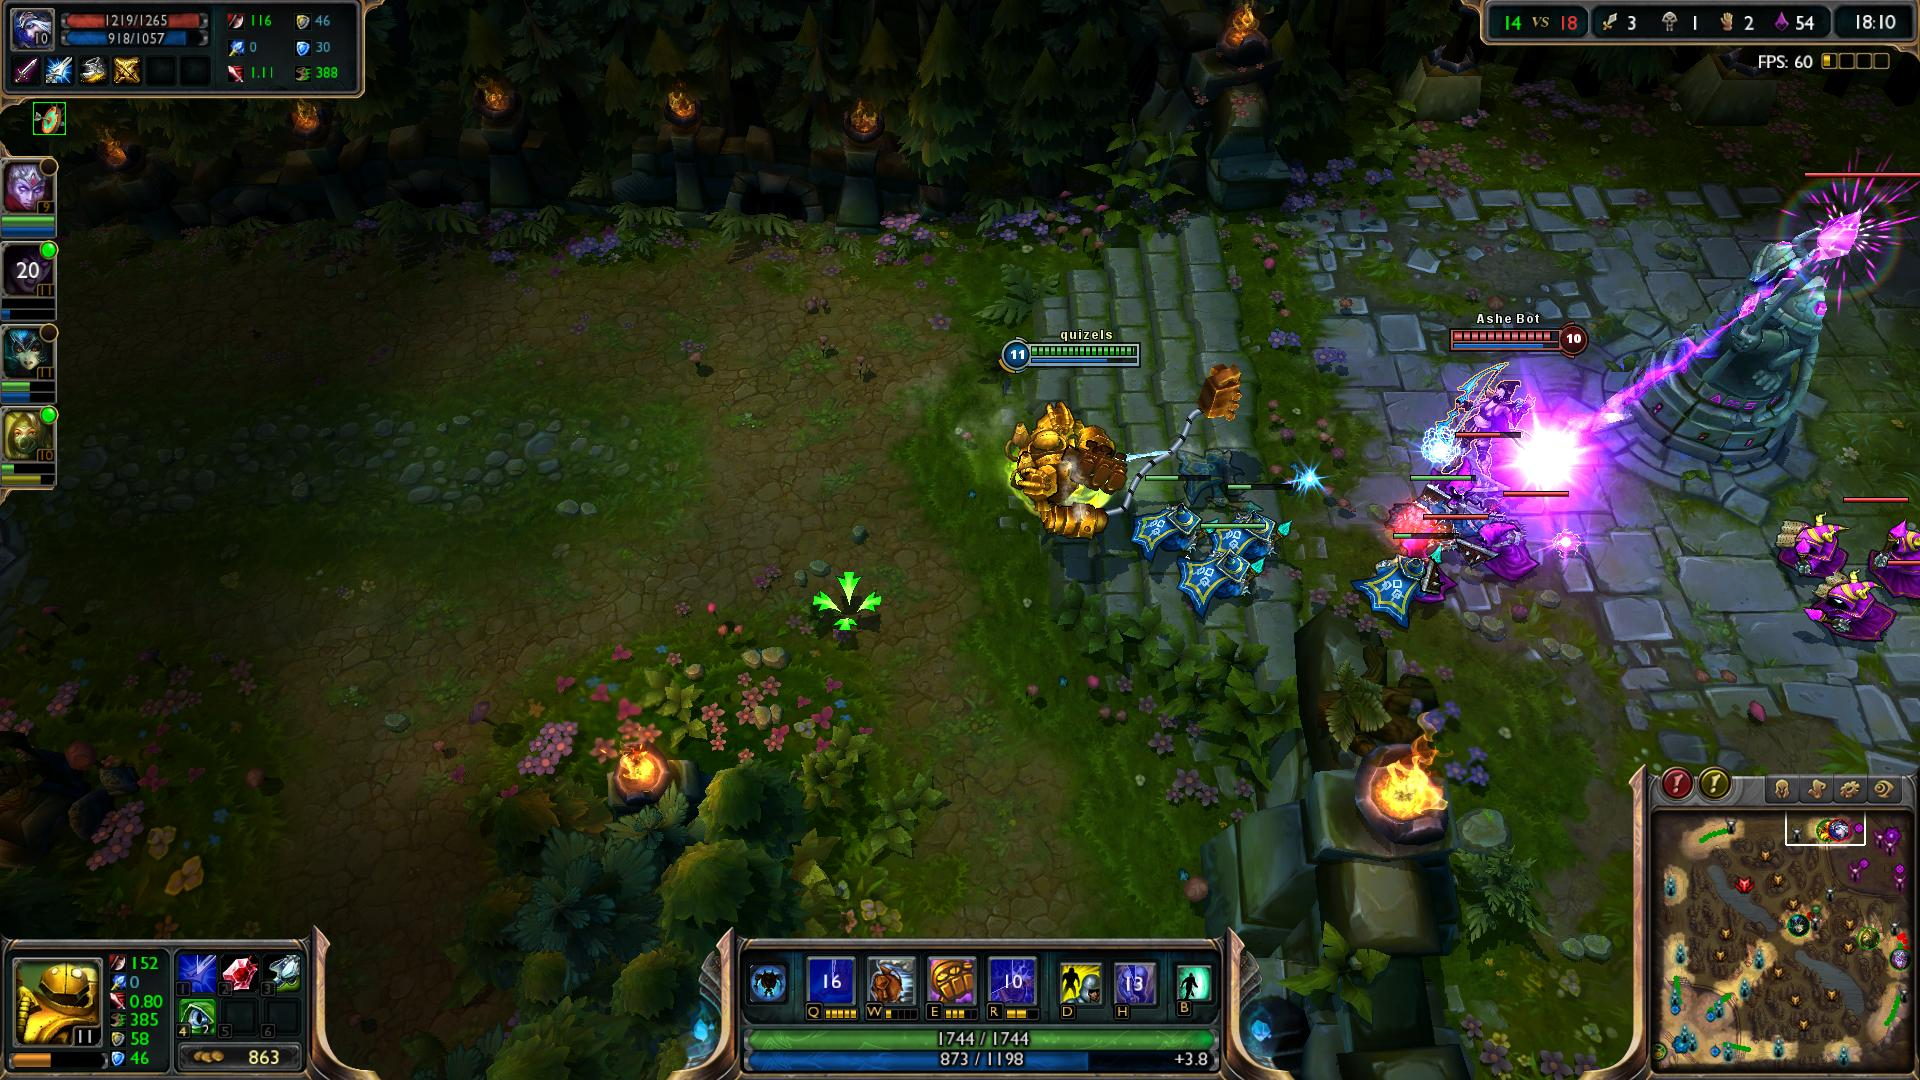 Rocket Grab Blitzcrank lol screenshot